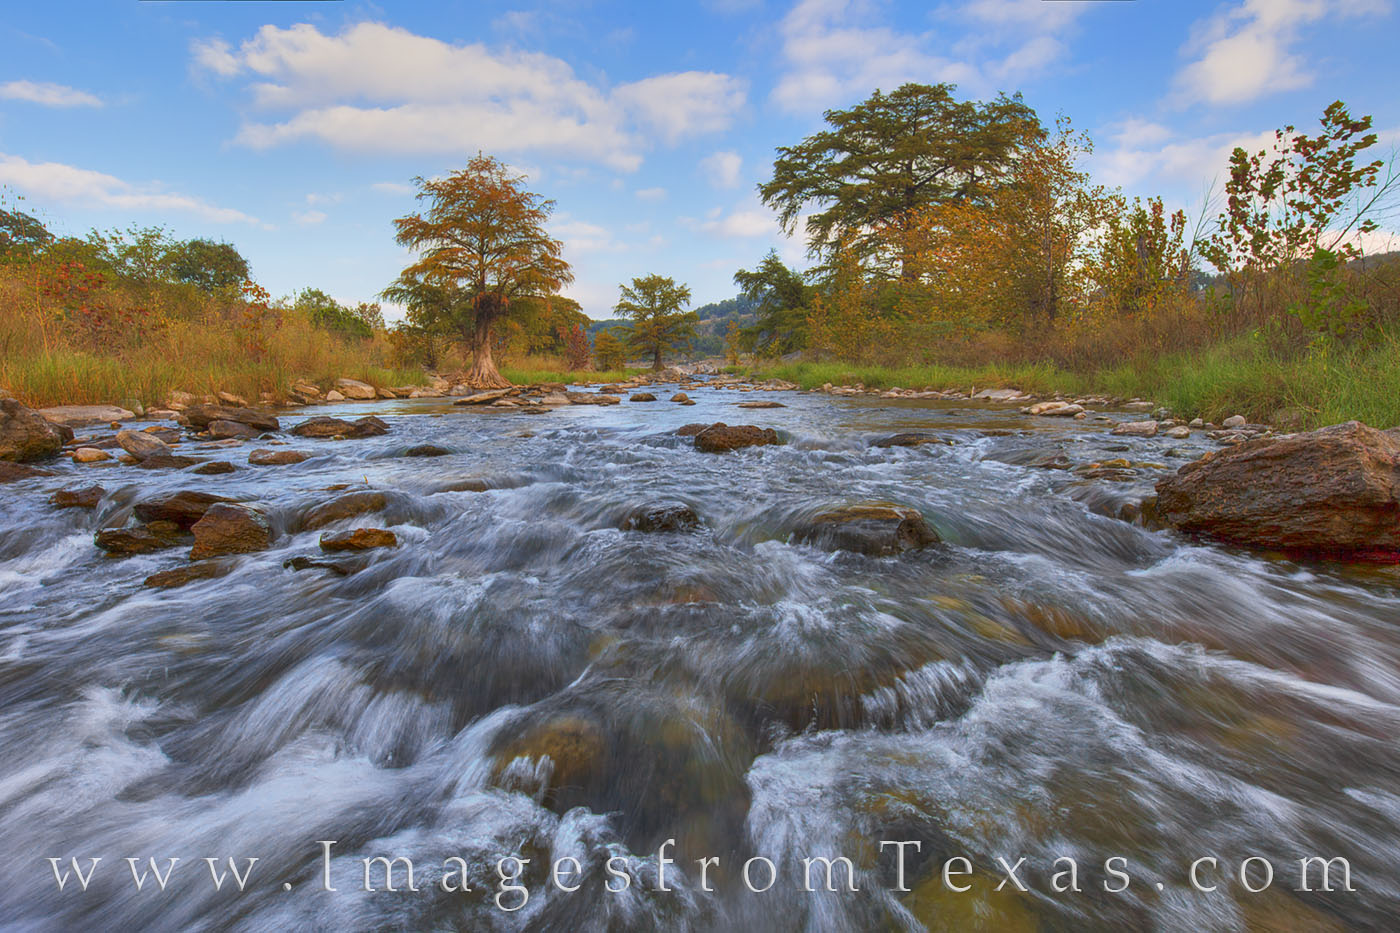 pedernales river, texas hill country, texas state parks, pedernales, cypress, landscapes, morning clouds, morning, texas hiking, photo